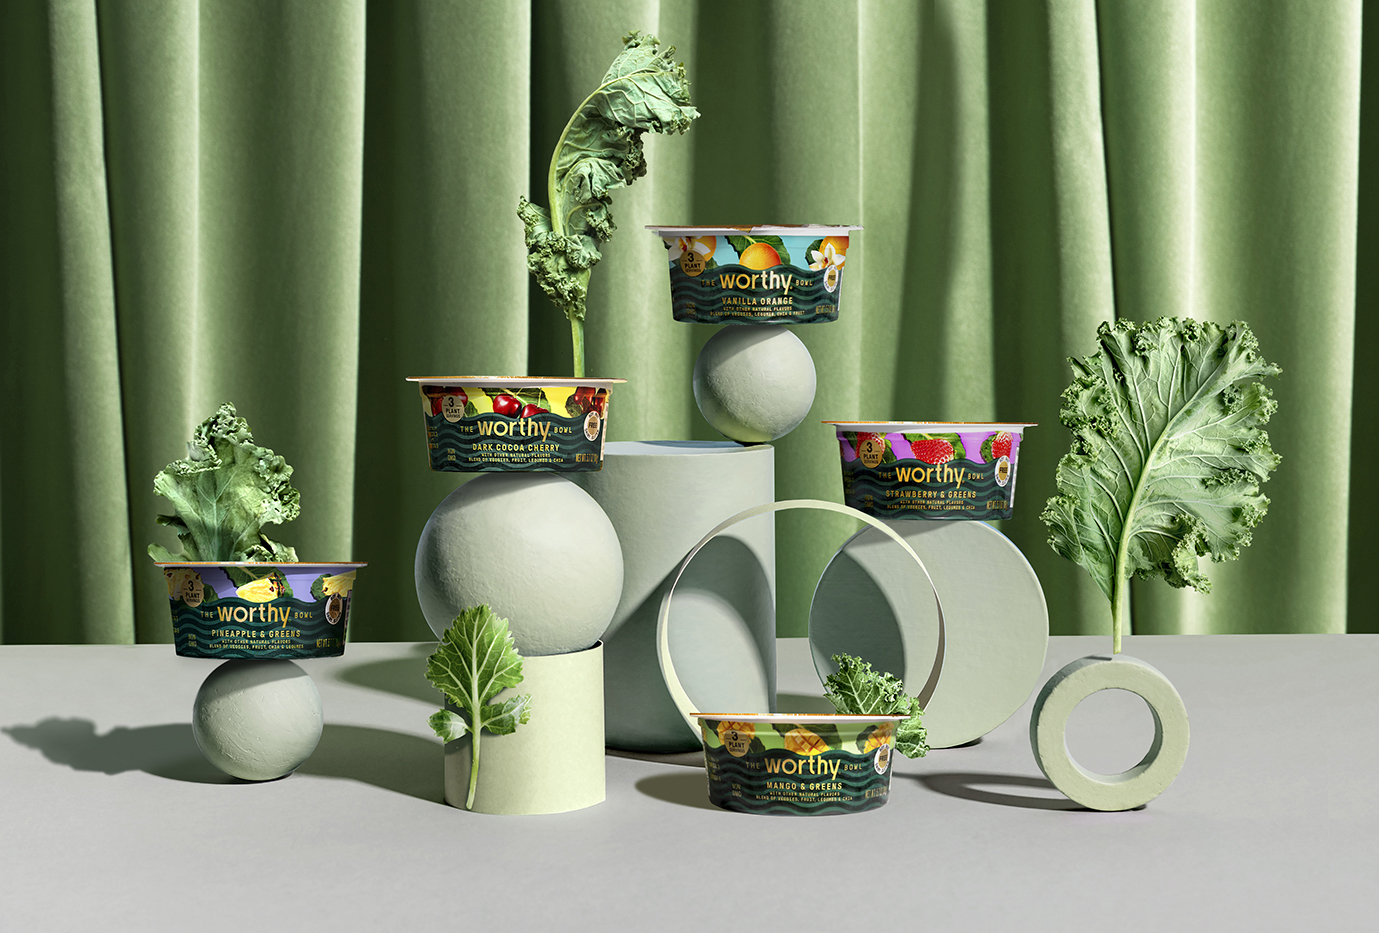 Hatch Design Created a New Plant-based Worthy Food Brand